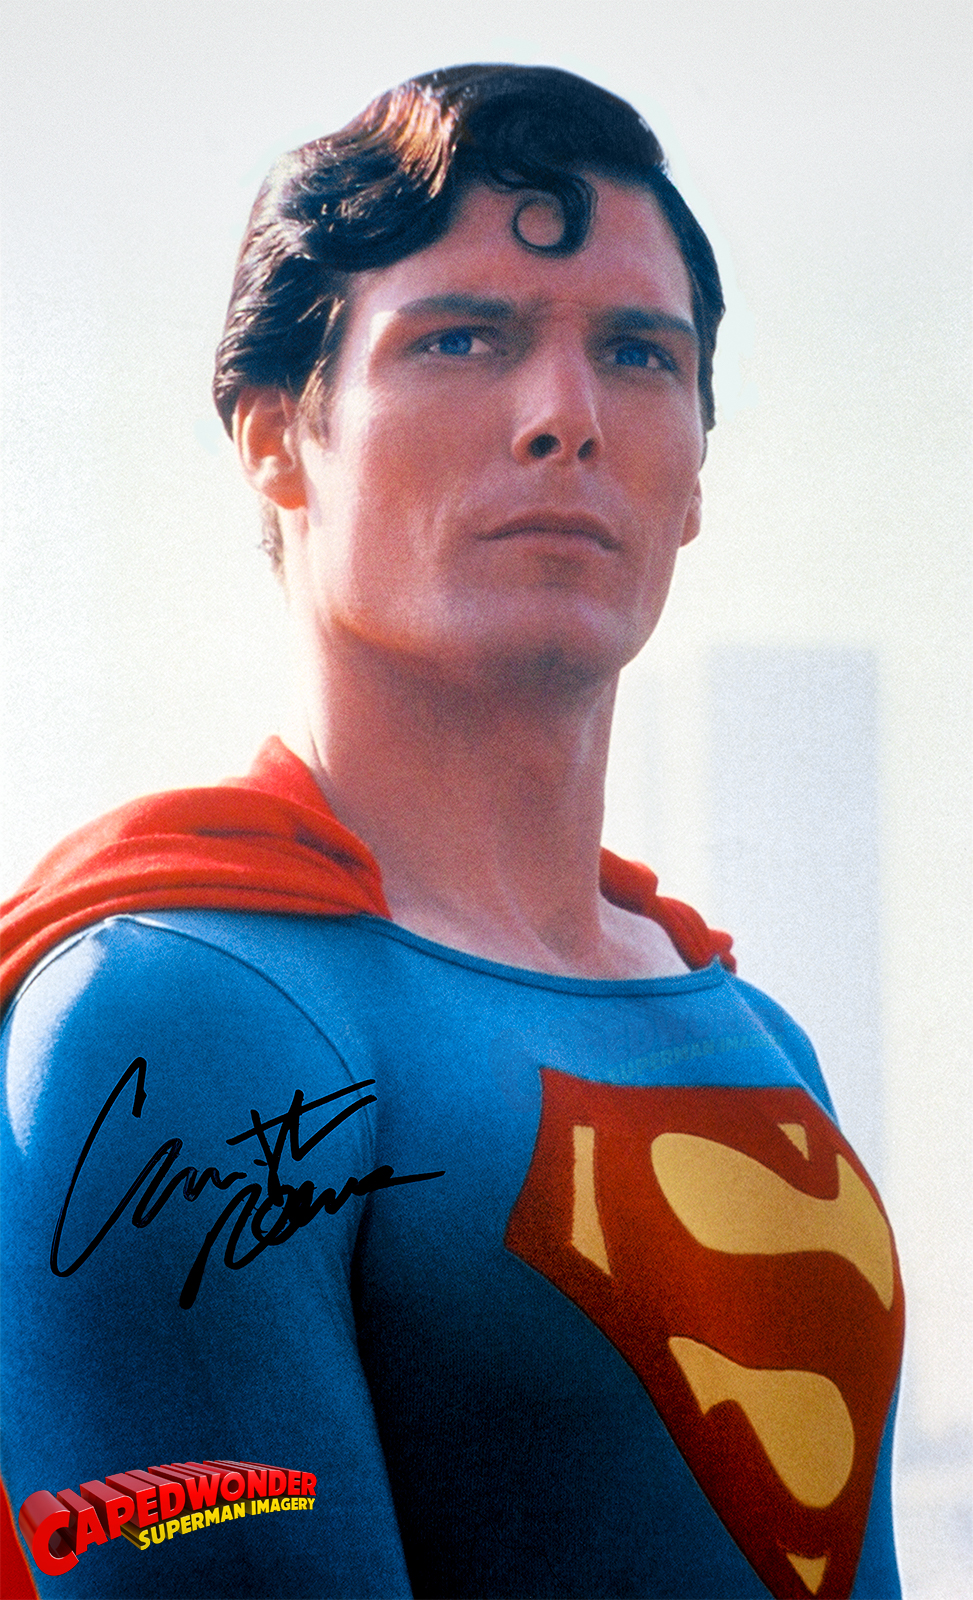 CW-STM-city-pose-Reeve-favorite-autographed.png